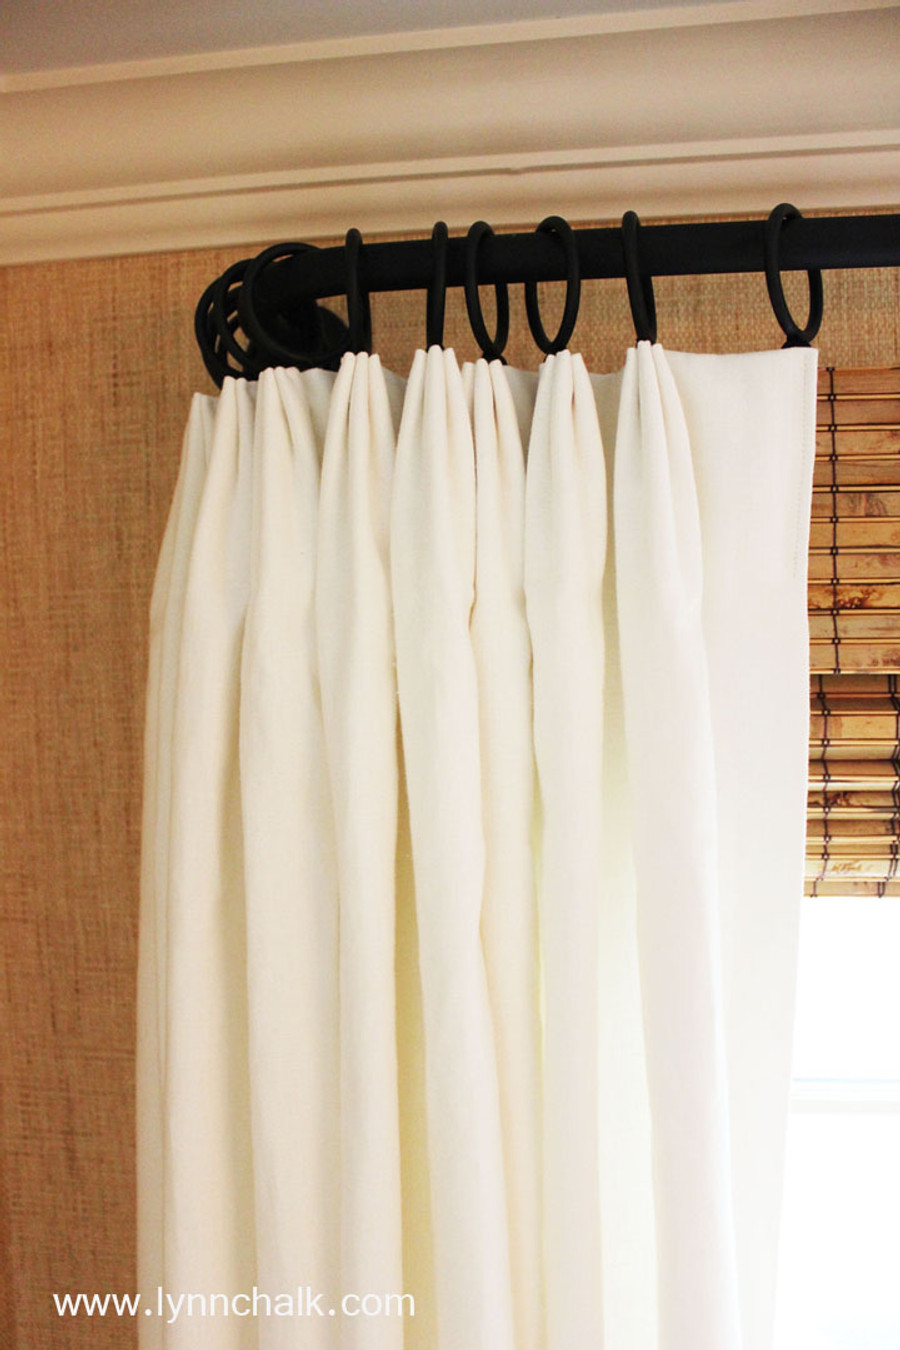 Custom Fan Pleated Drapes by Lynn Chalk in Kravet Dublin Linen in Bleach.